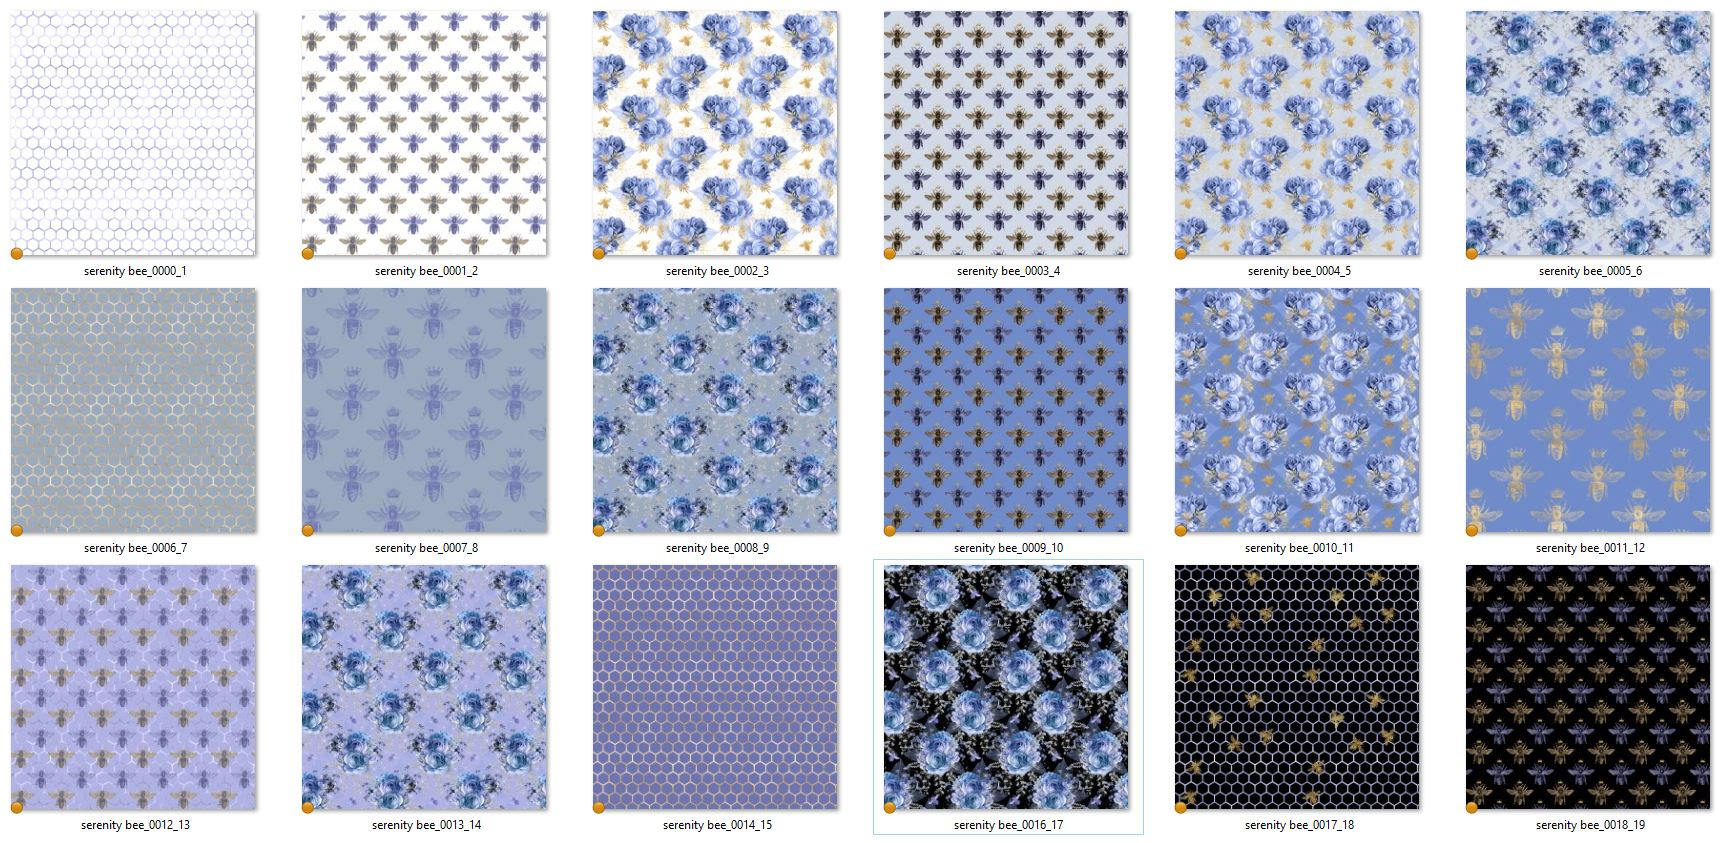 Serenity Bee Seamless Patterns example image 3